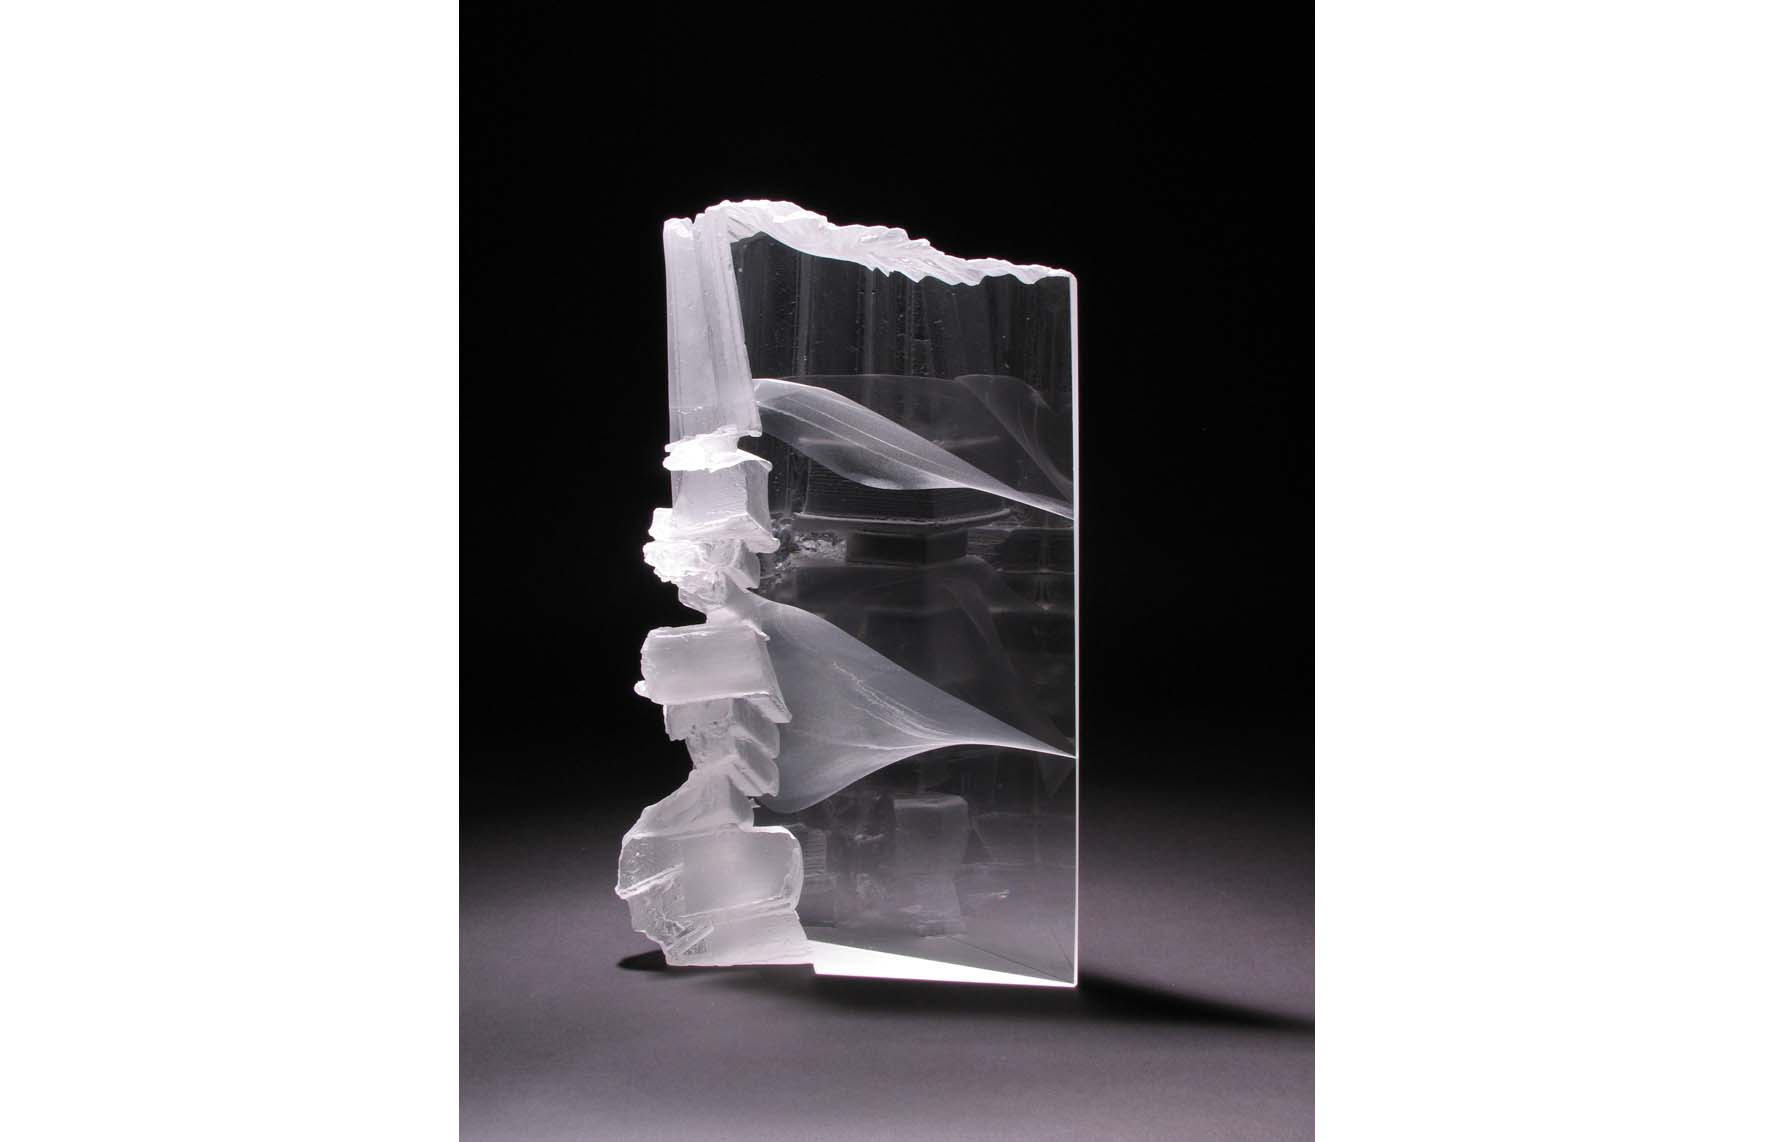 Glass sculpture by Colin Reid